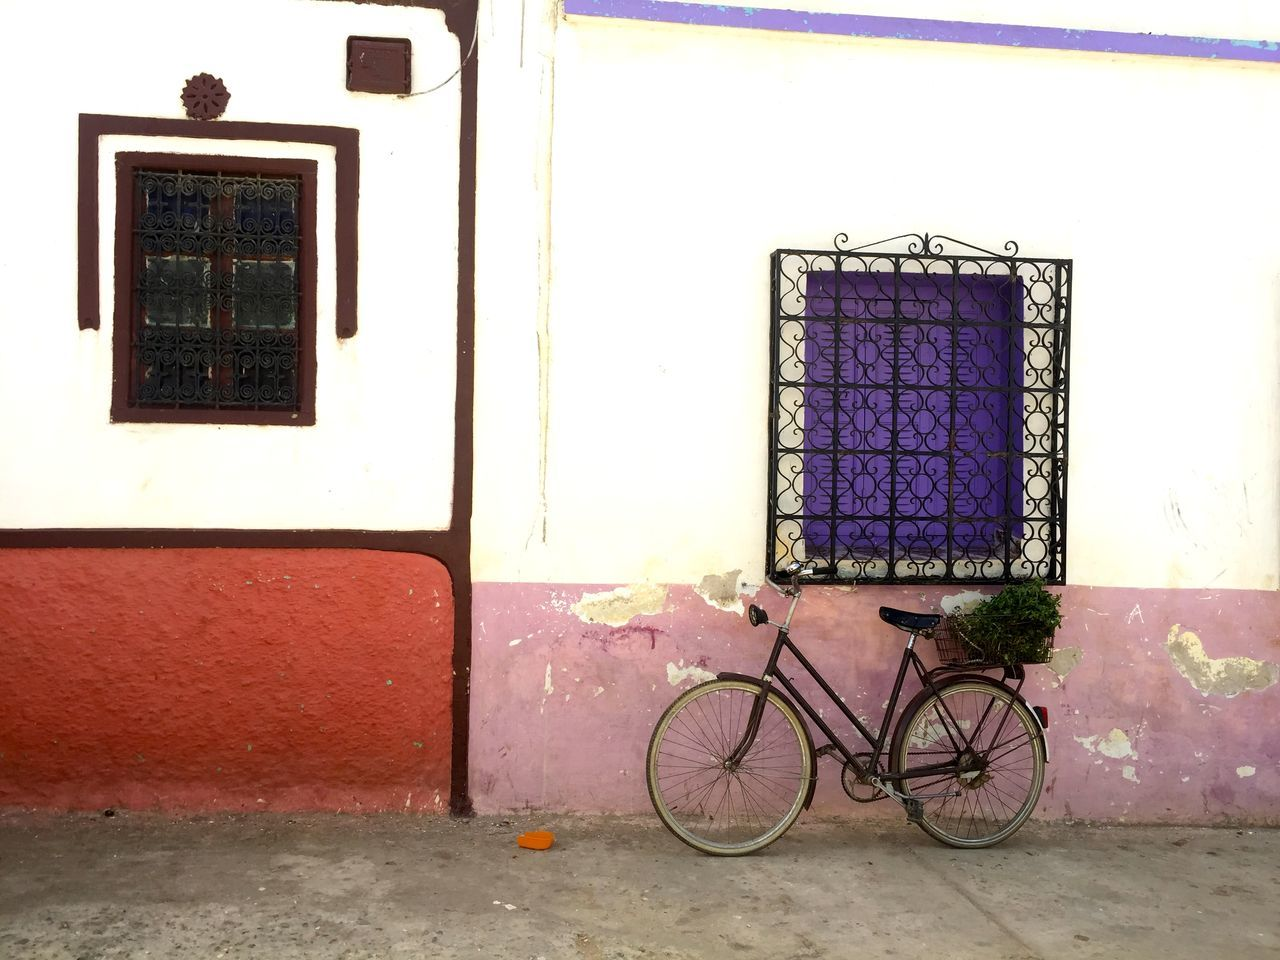 Architecture Basket Bicycle Bike Building Exterior Colorful Iron Leaning Local Local Life Morocco Neighborhood No People Old Fashioned Parked Rustic Shutters Transportation Travel Vegetables Vintage Wall Weathered Window Wrought Iron